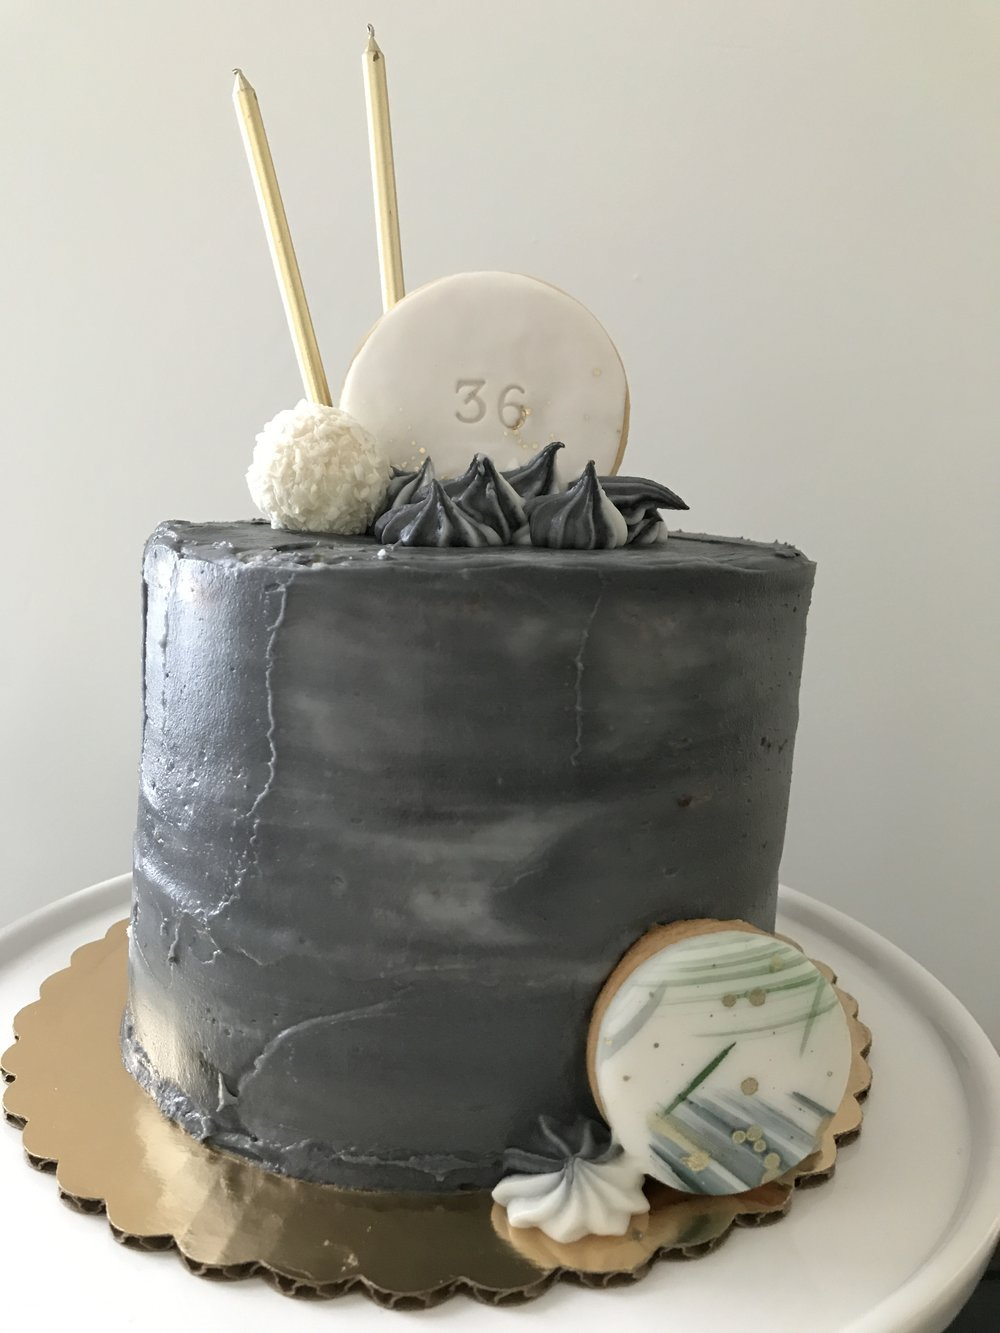 Classic GlamCake With Cookie Cake Topper And Decor Flavor Marbled Vanilla Chocolate